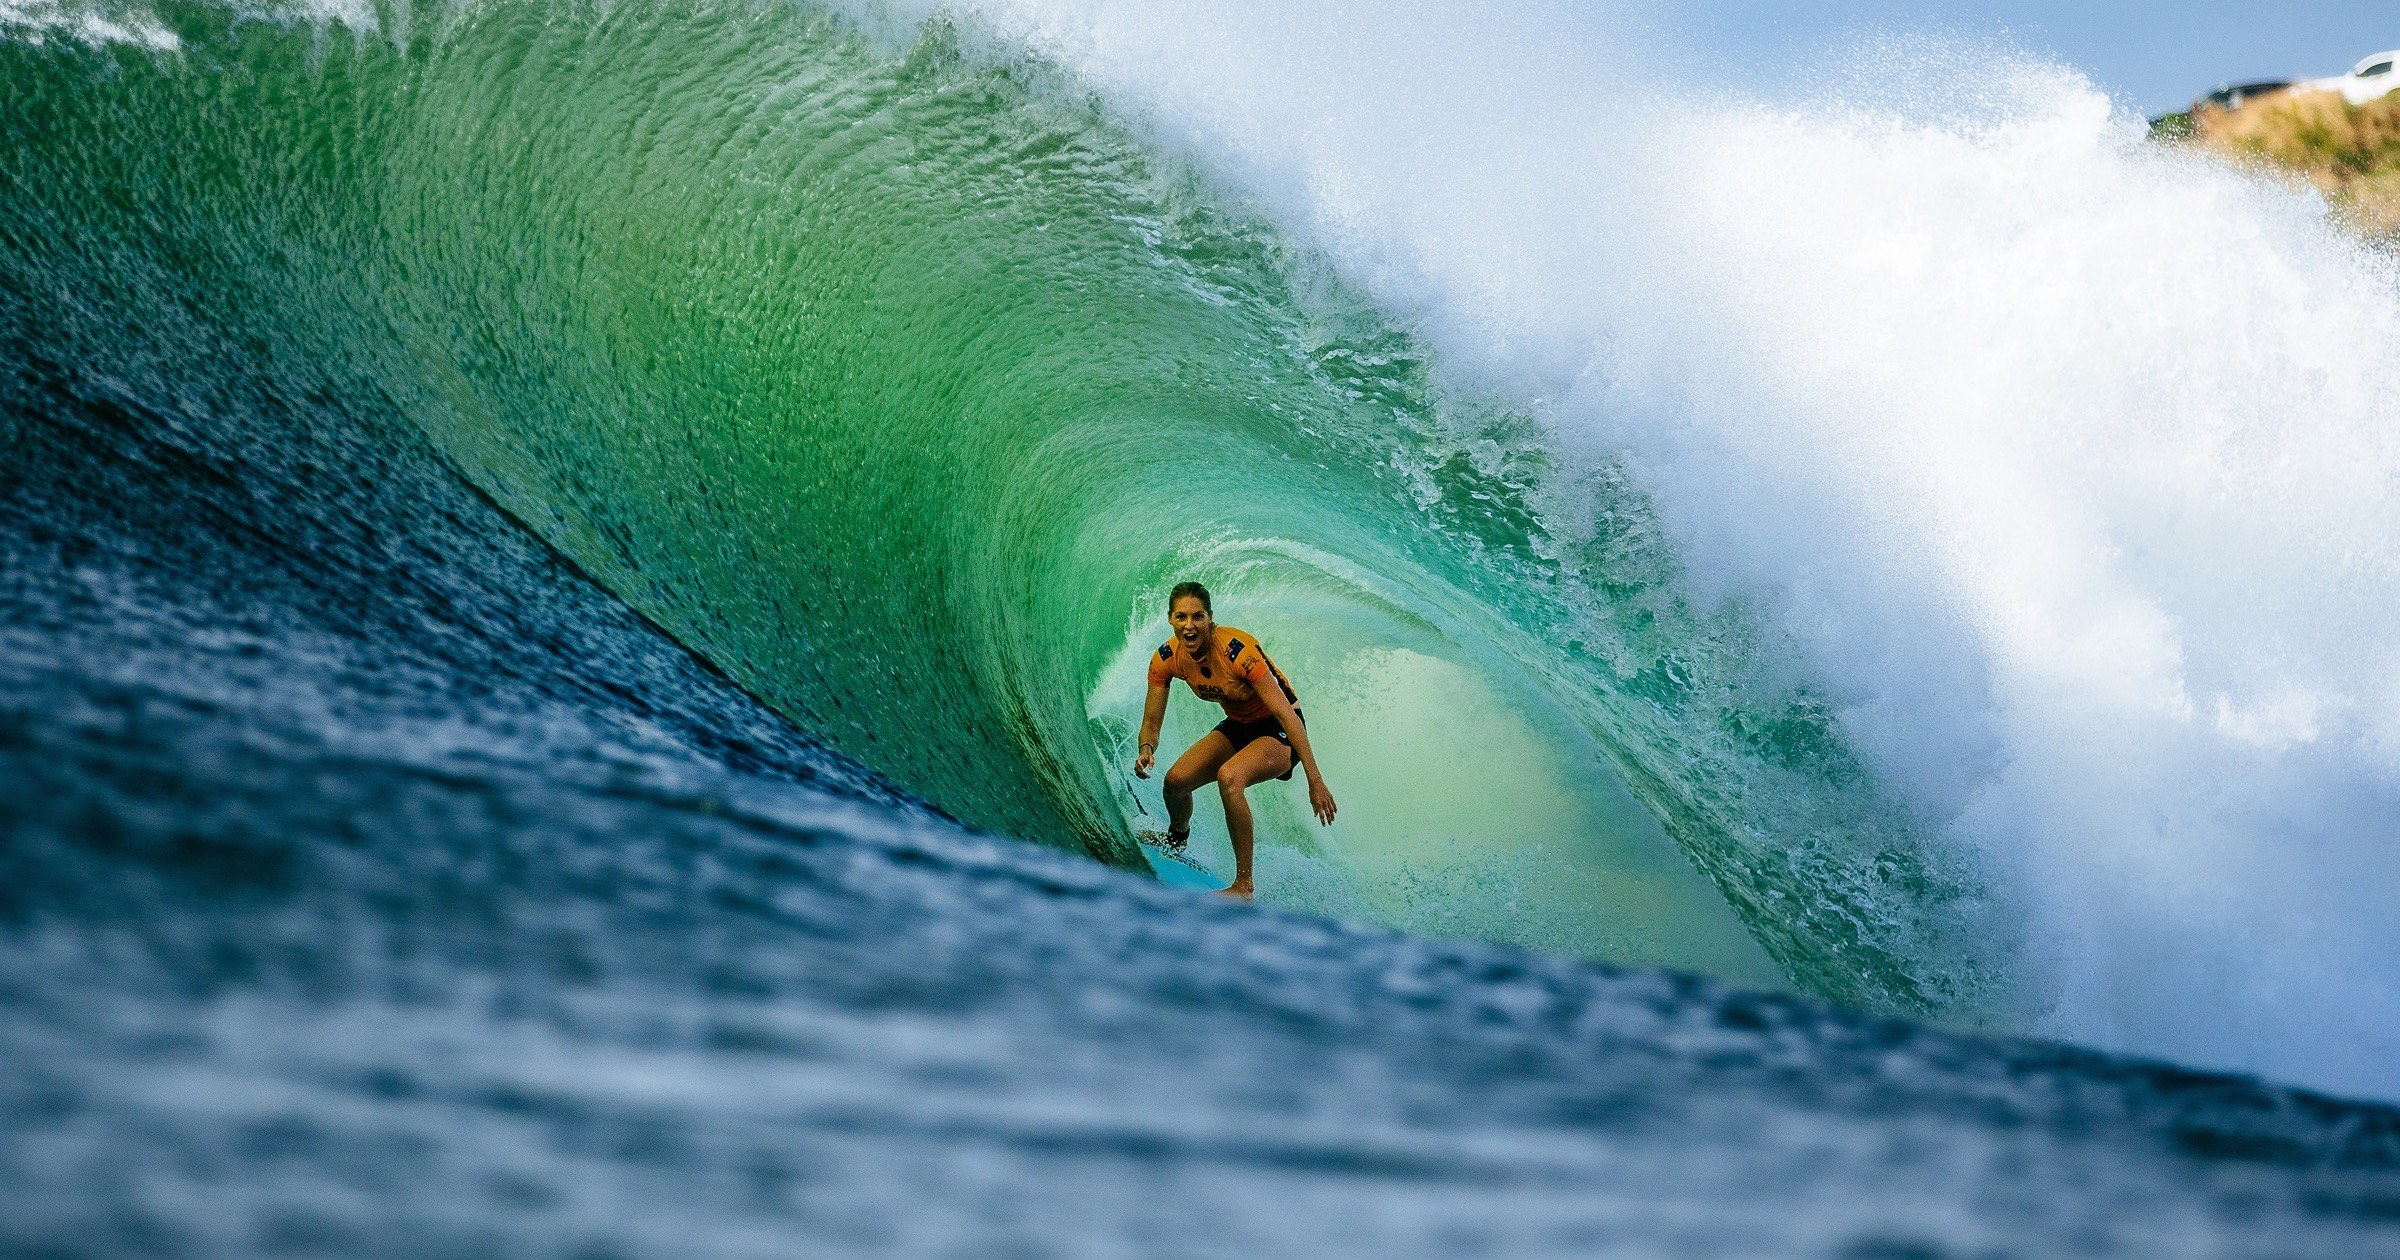 A surfer in the Apple world surf league docuseries